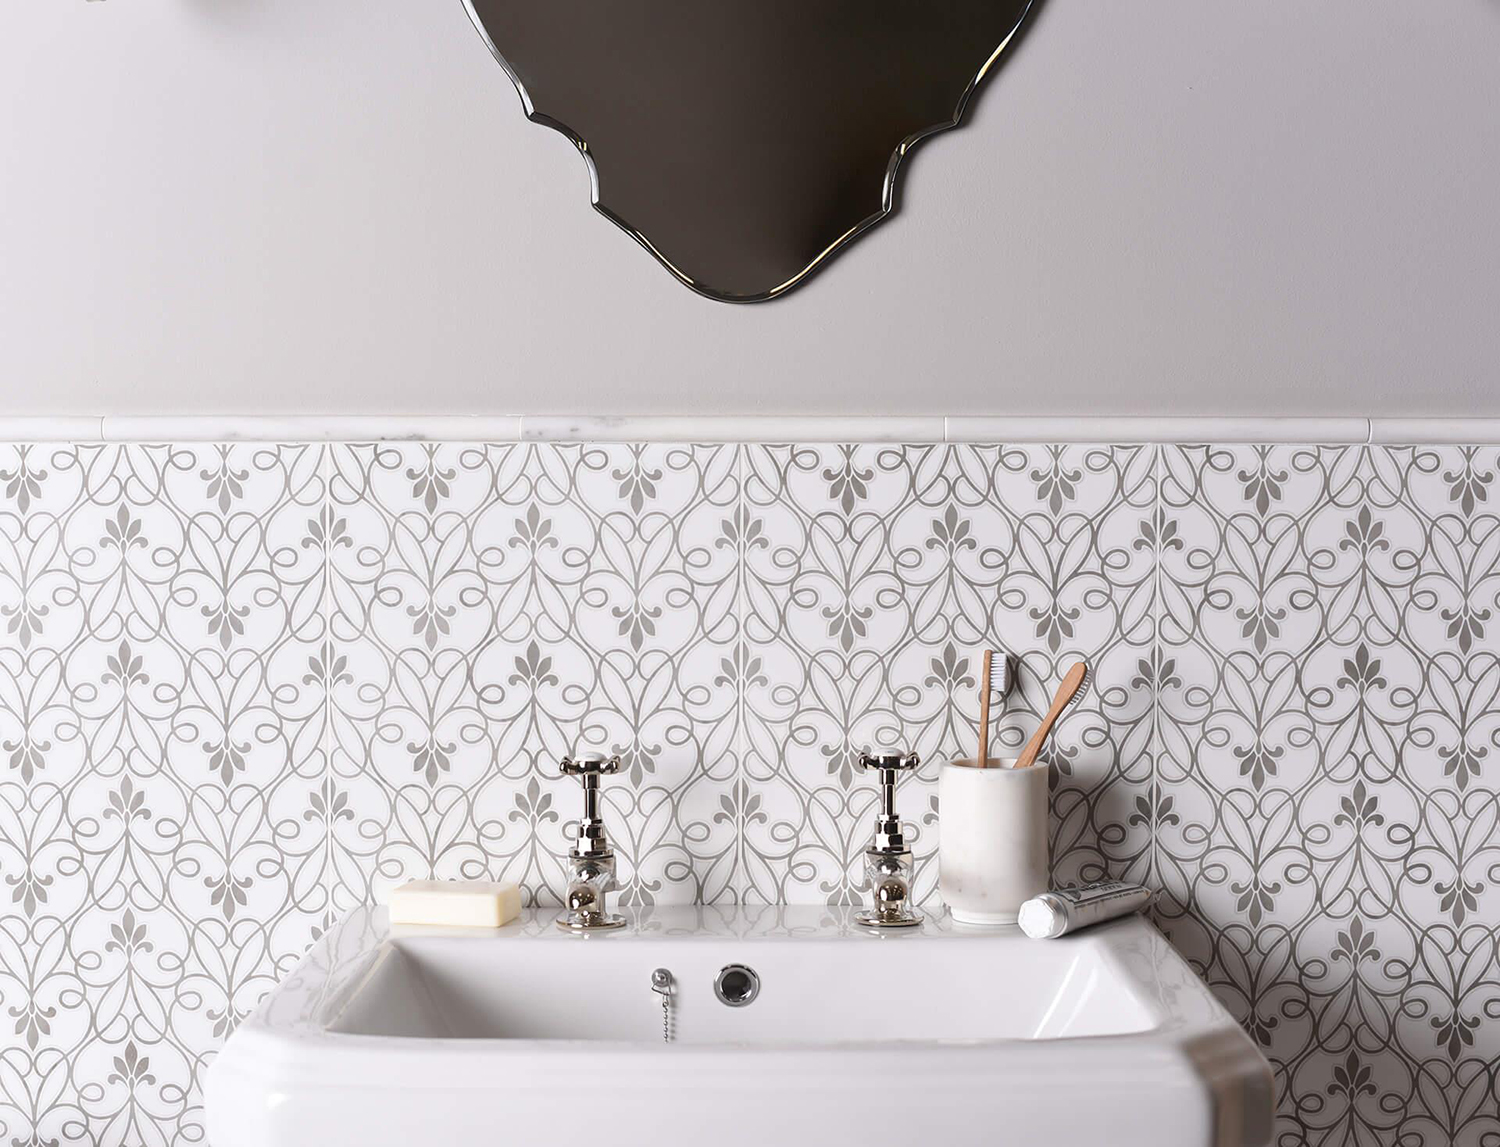 Patterned Ceramic Tiles